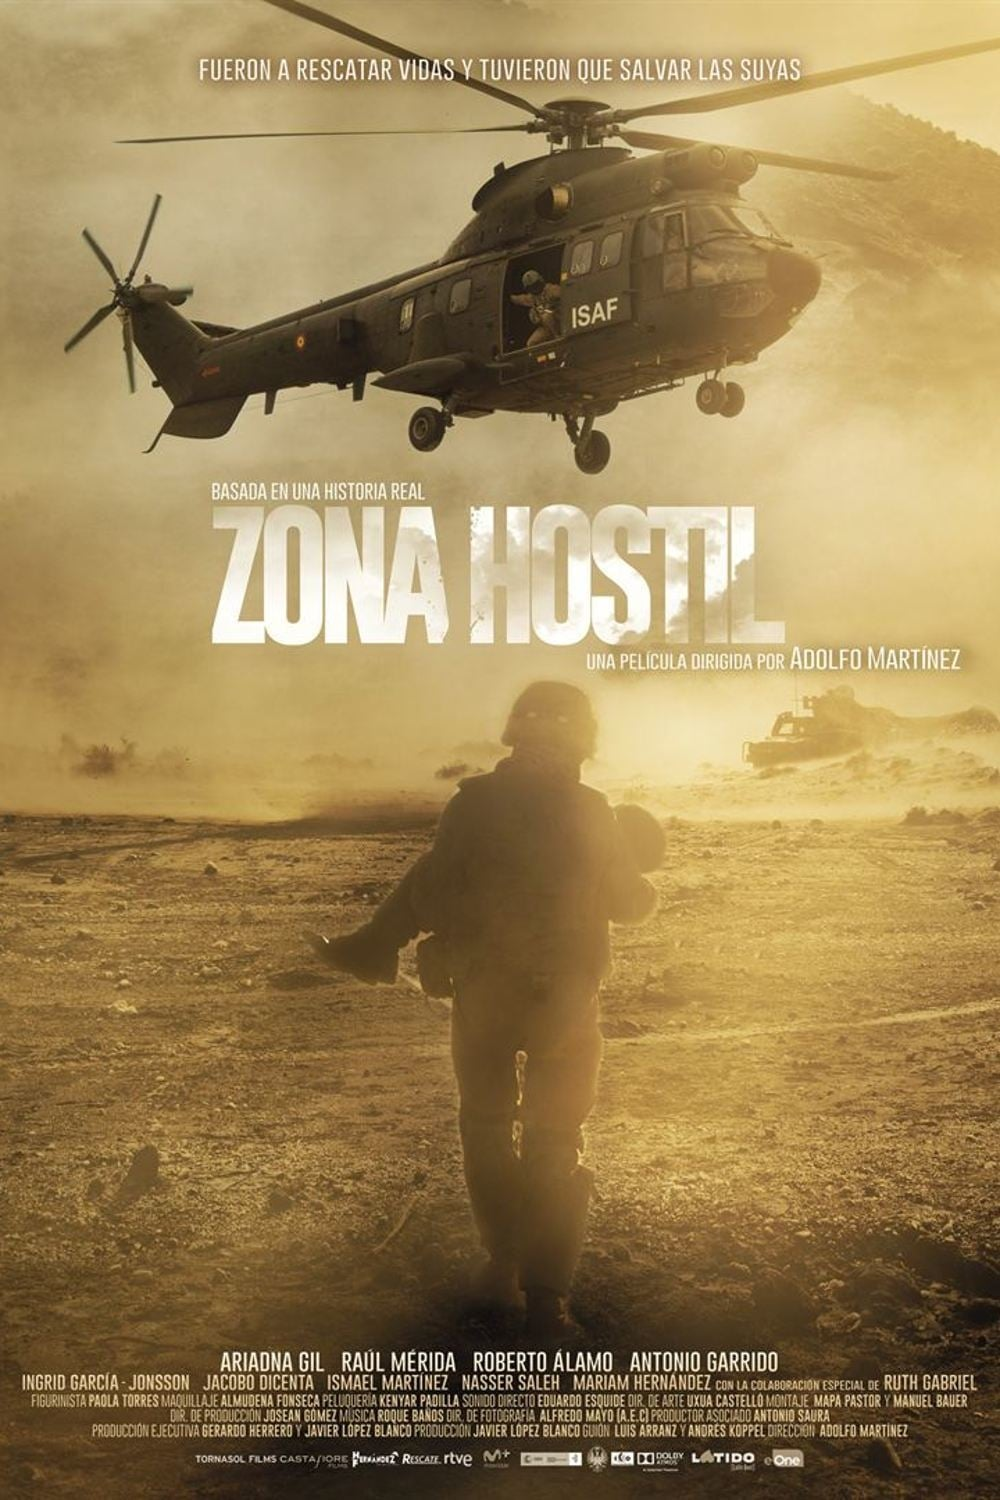 Zona Hostil / Rescue Under Fire